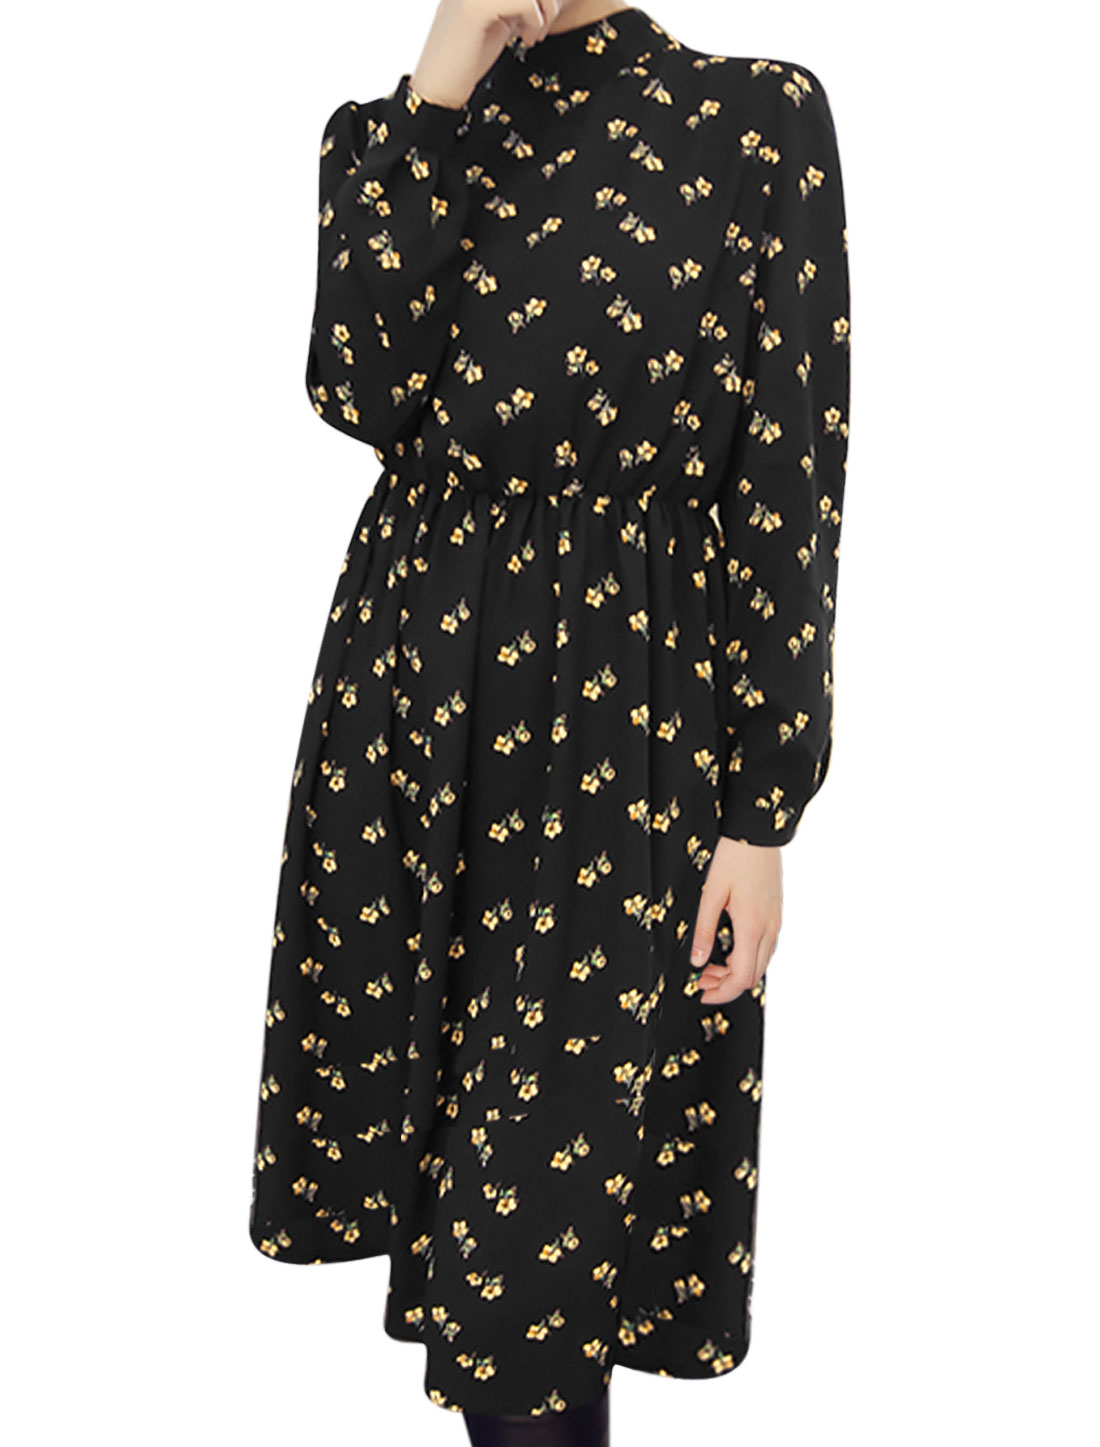 Lady Stand Collar Floral Prints Elastic Waist Shirt Dress Black XS